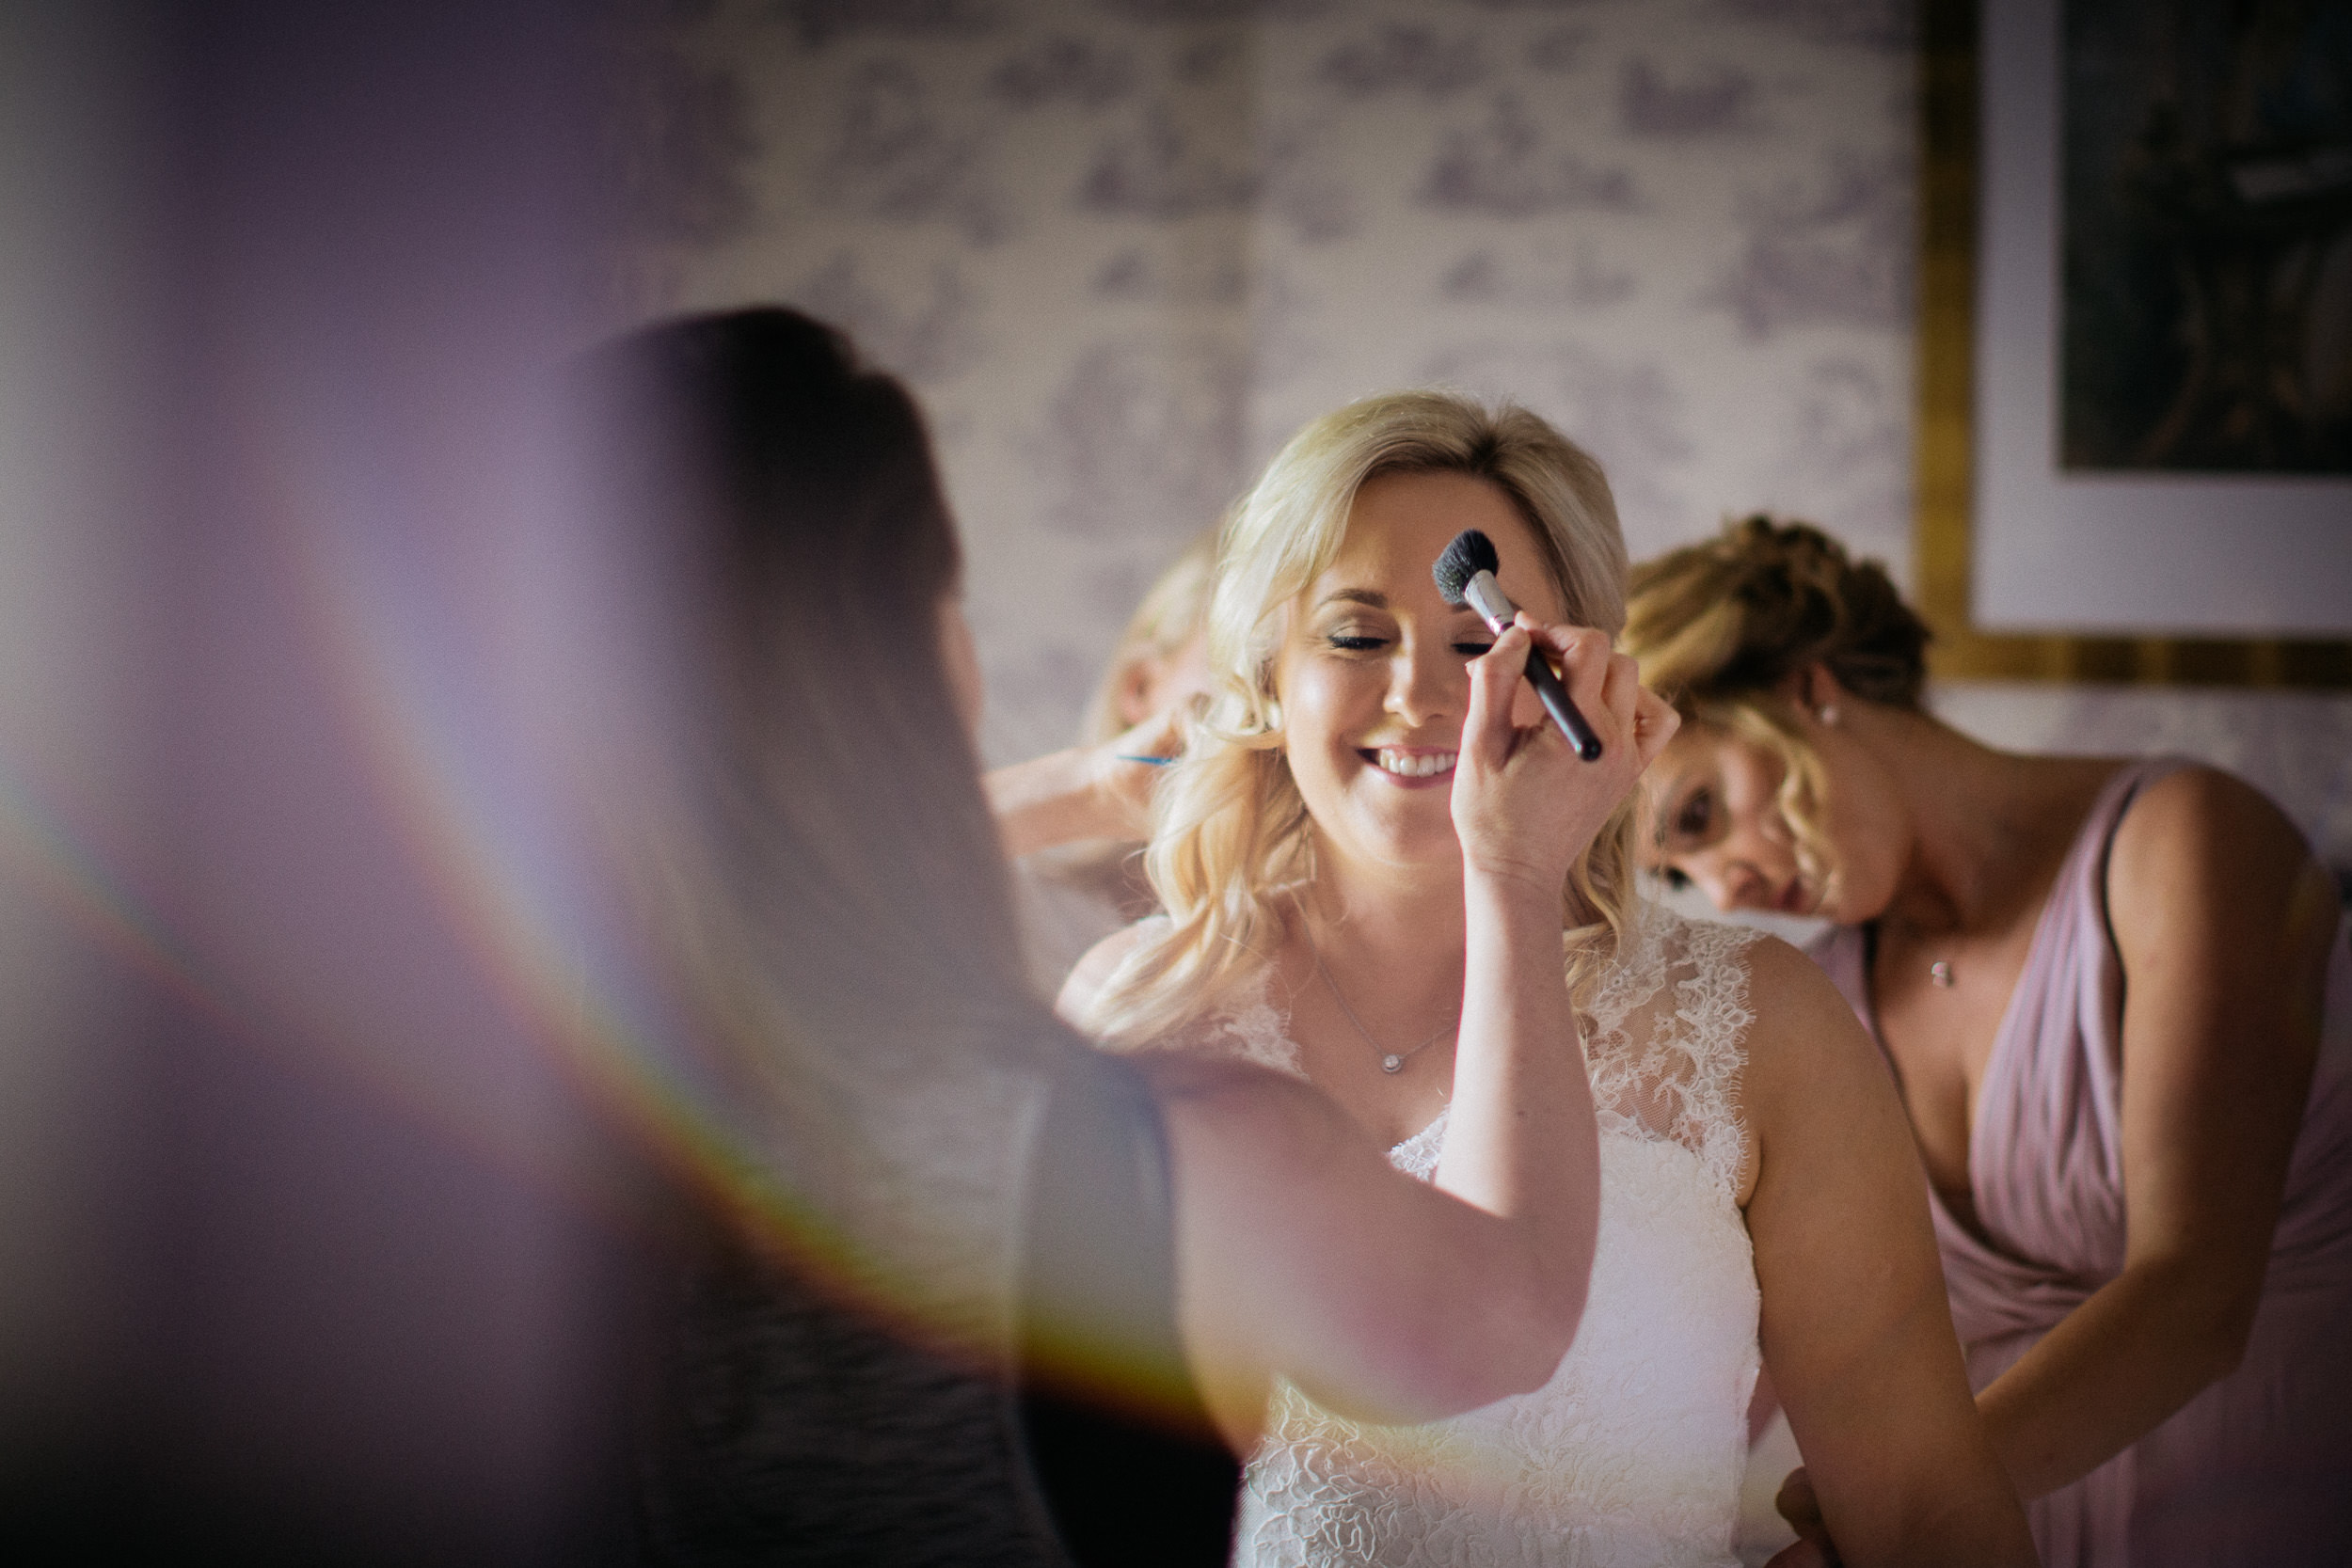 clairebyrnephotography-fun-wedding-photographer-ireland-creative-172.jpg